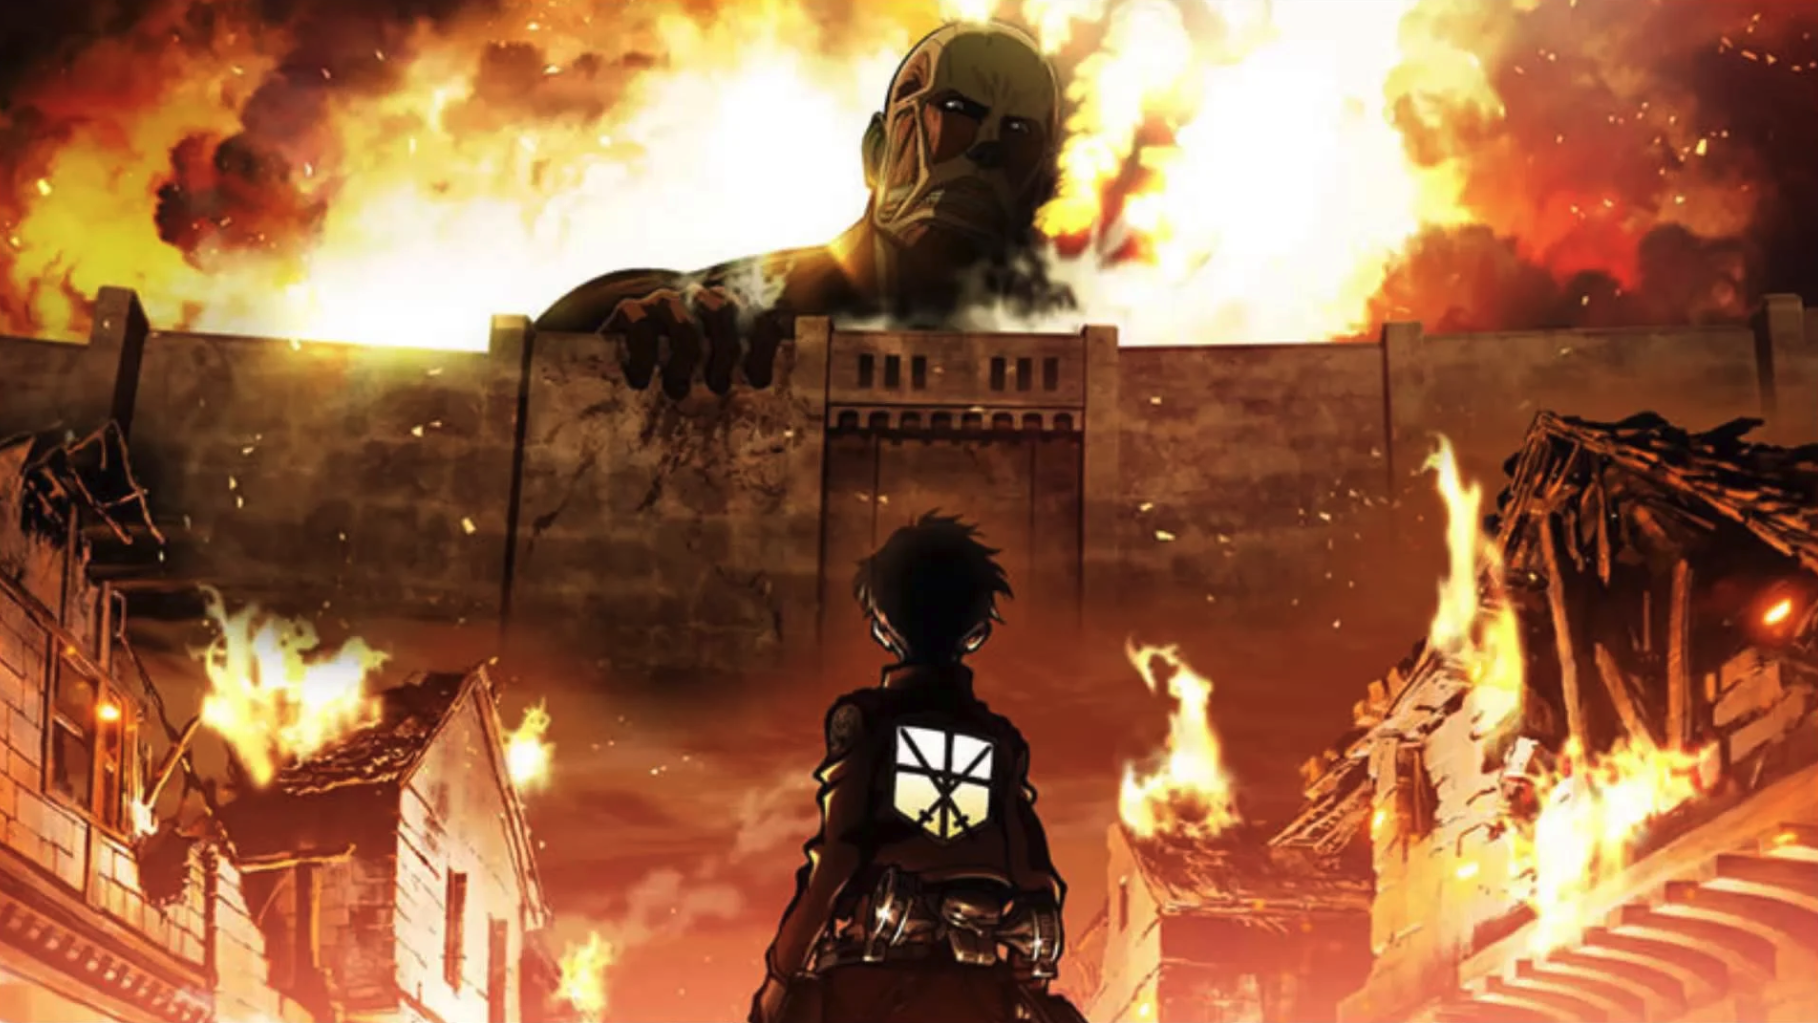 Eren from Attack on Titan looking at a titan above a wall surrounding his town